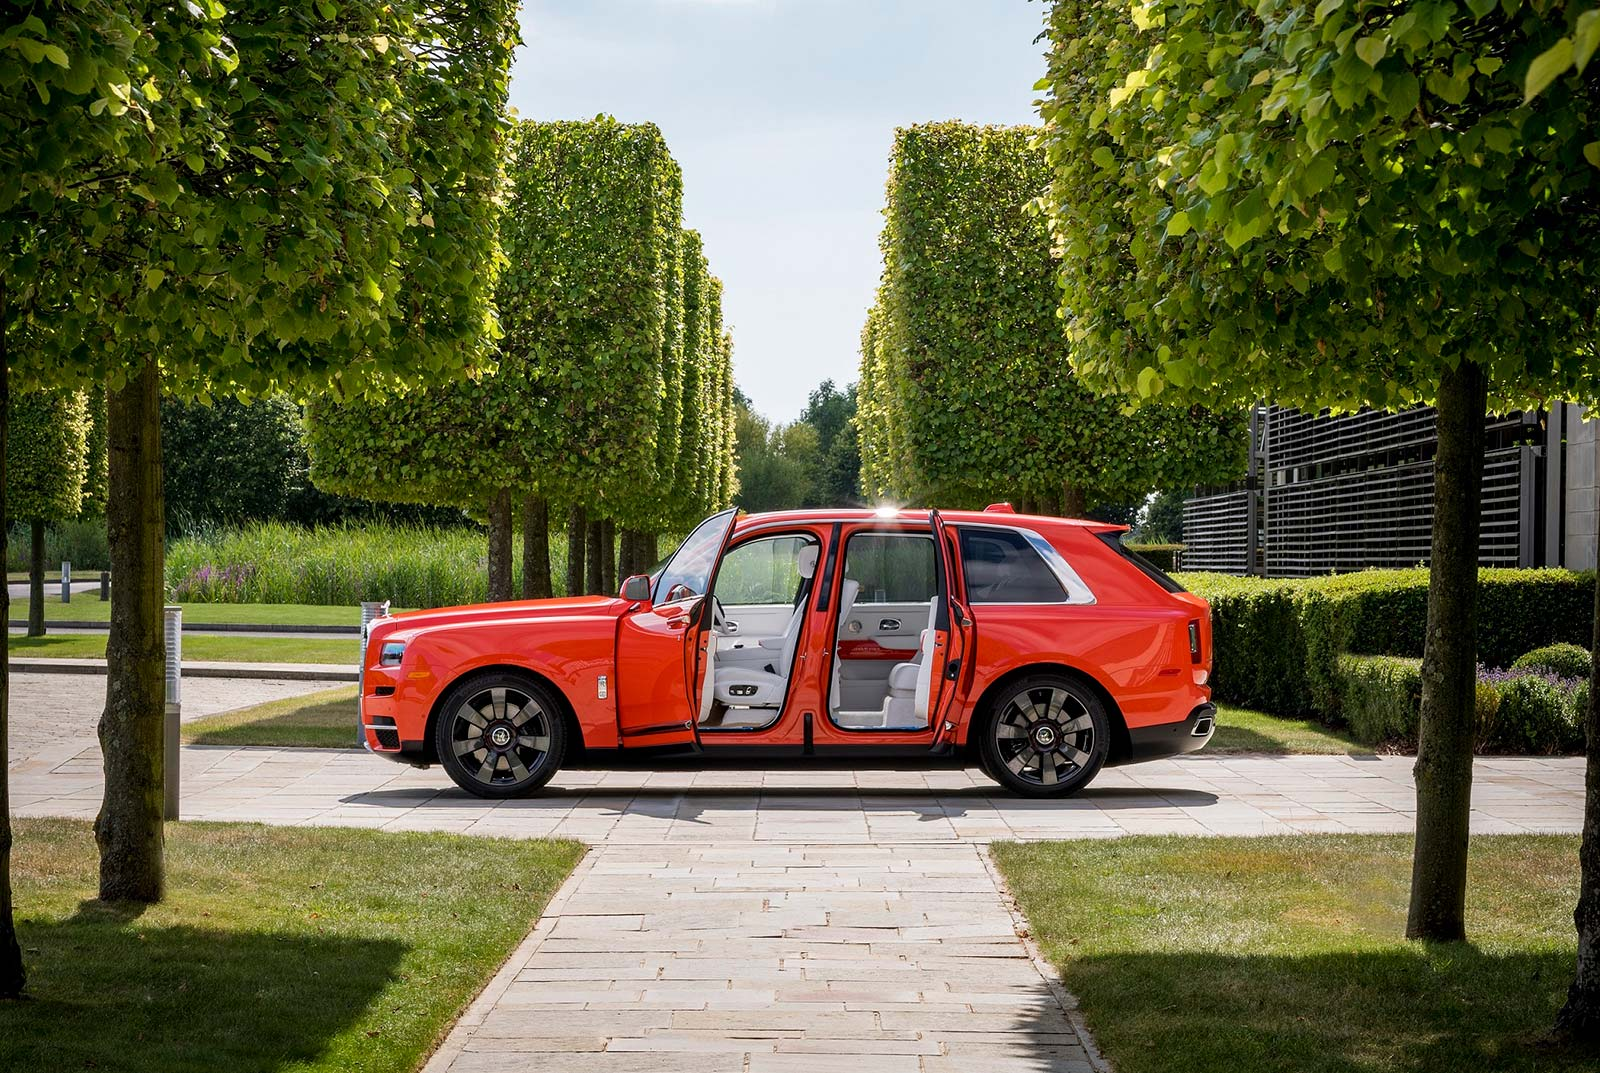 ROLLS-ROYCE MOTOR CARS PRESENTS BESPOKE 'CULLINAN IN FUX ORANGE' TO FAMED COLLECTOR